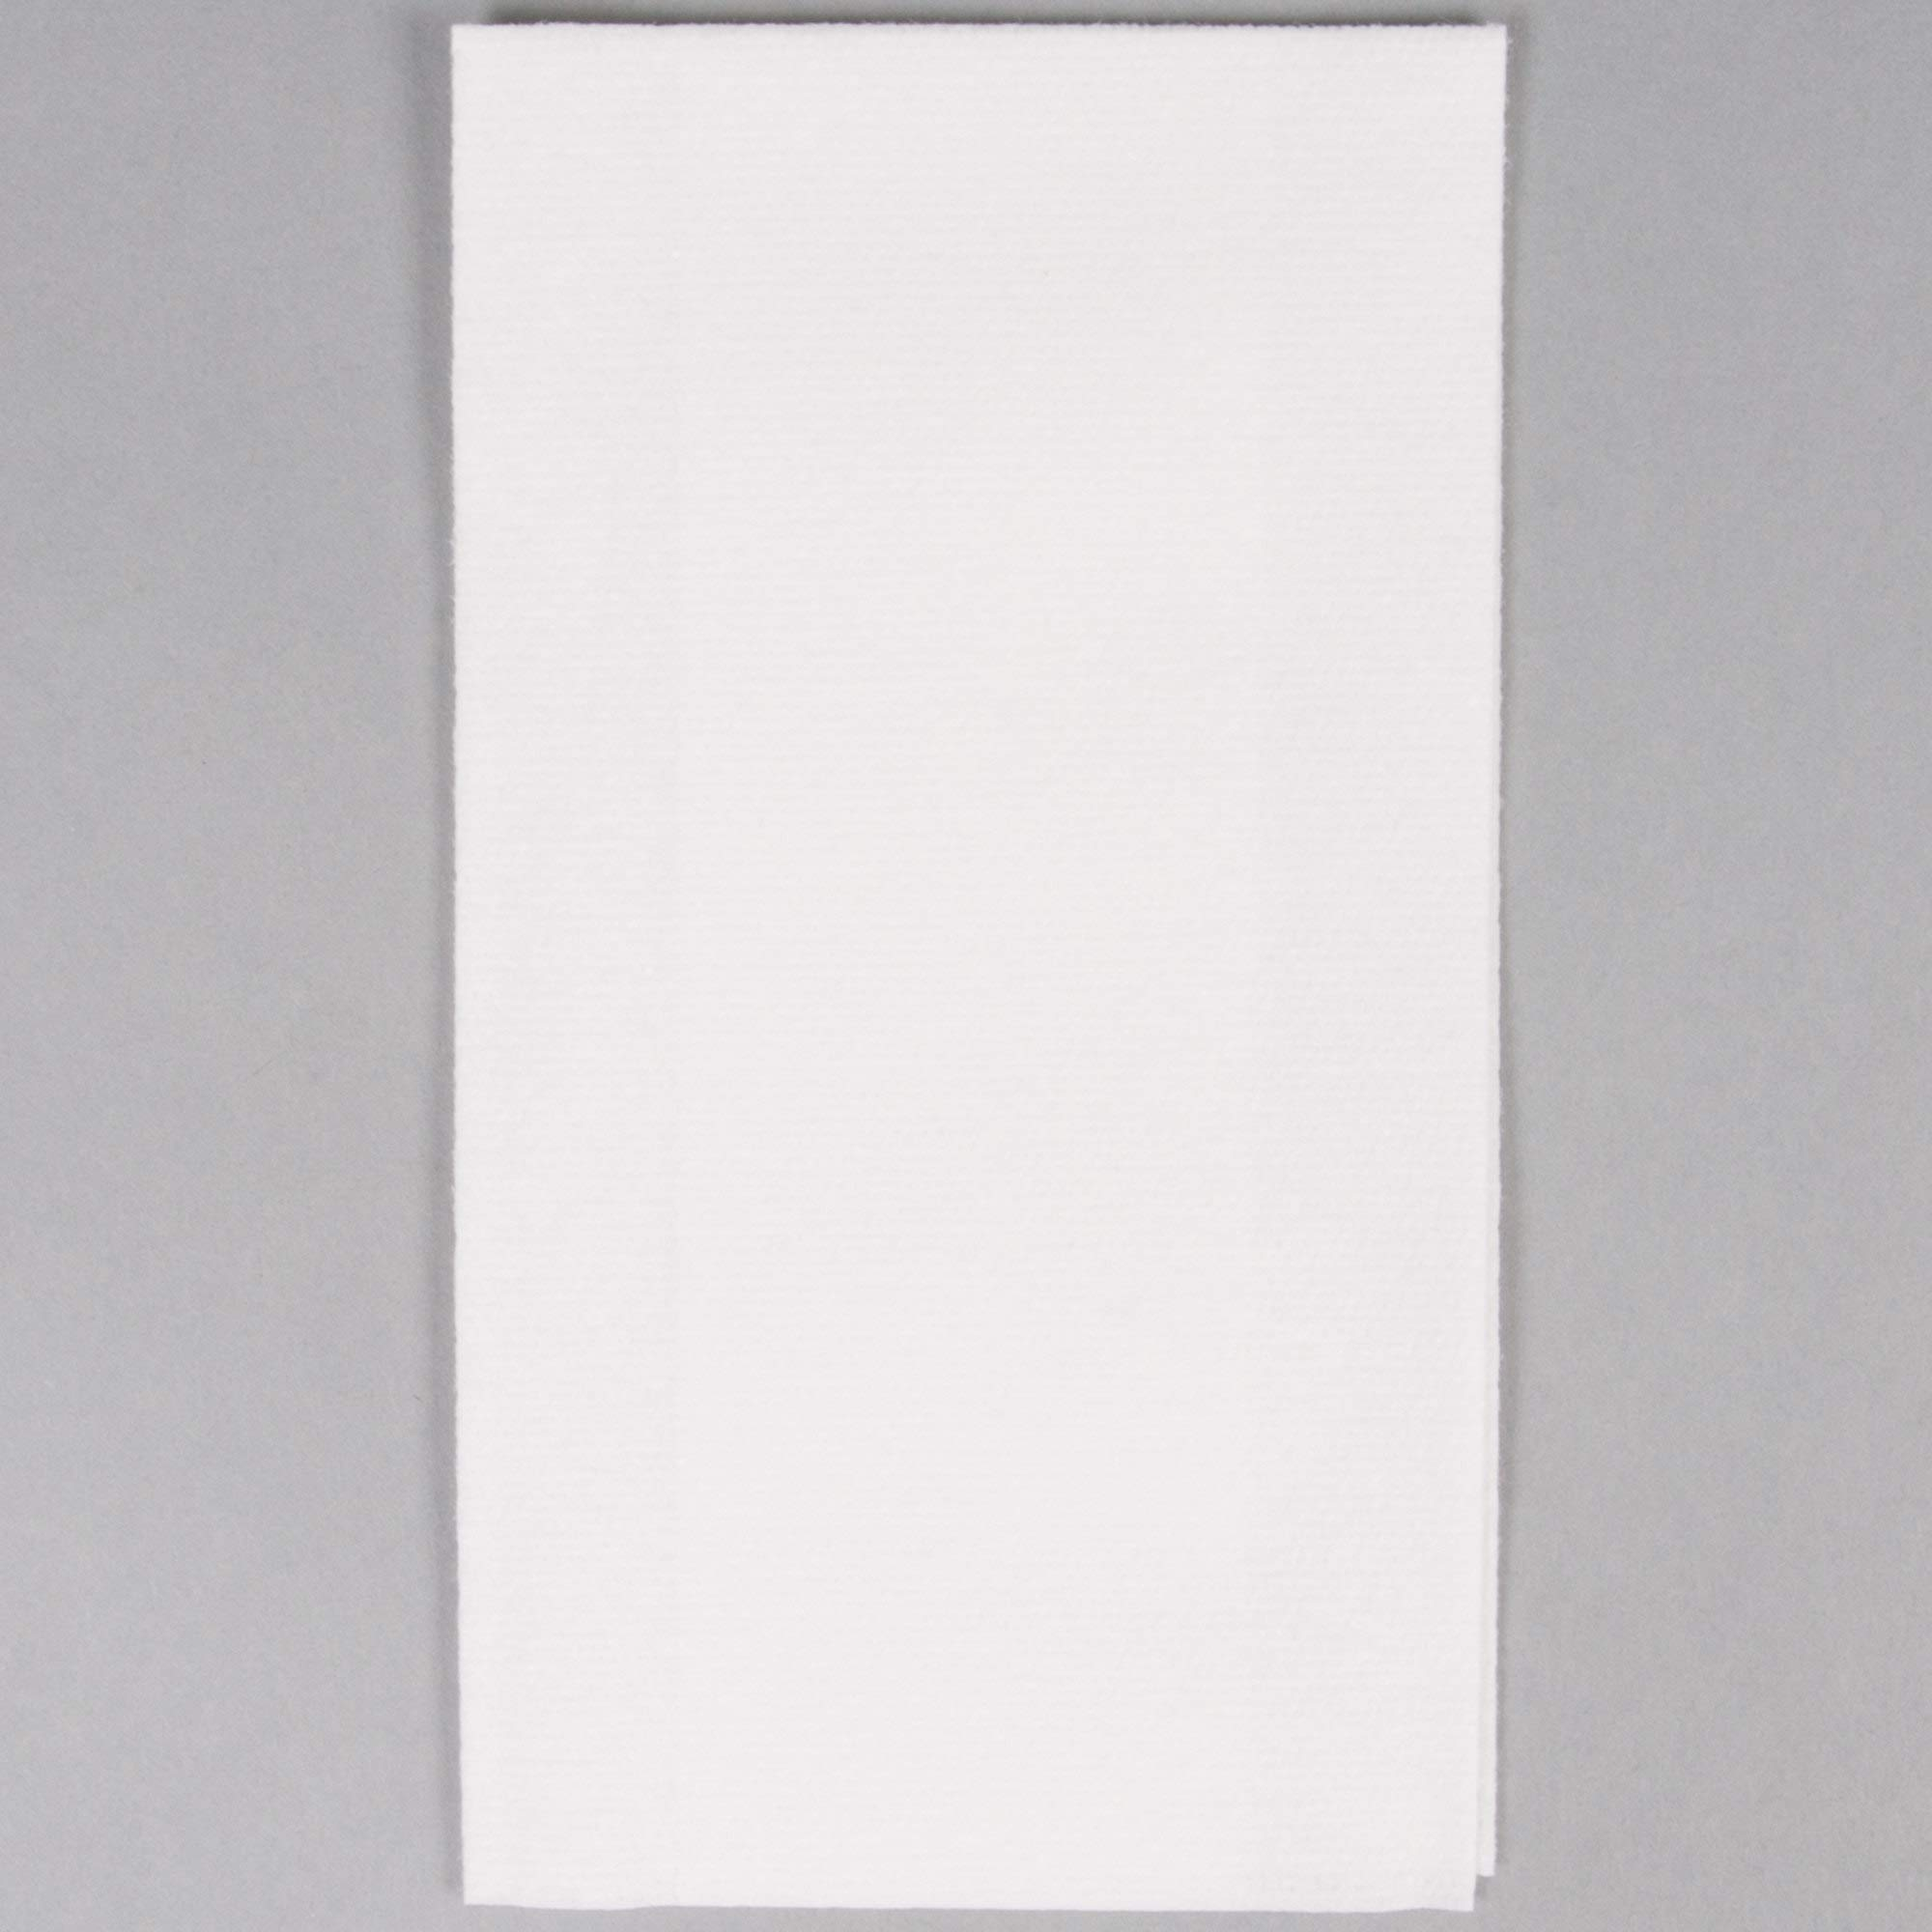 TableTop King 856460 Linen-Like Select 12'' x 17'' White 1/6 Fold Guest Towel in Dispenser Box - 500/Case